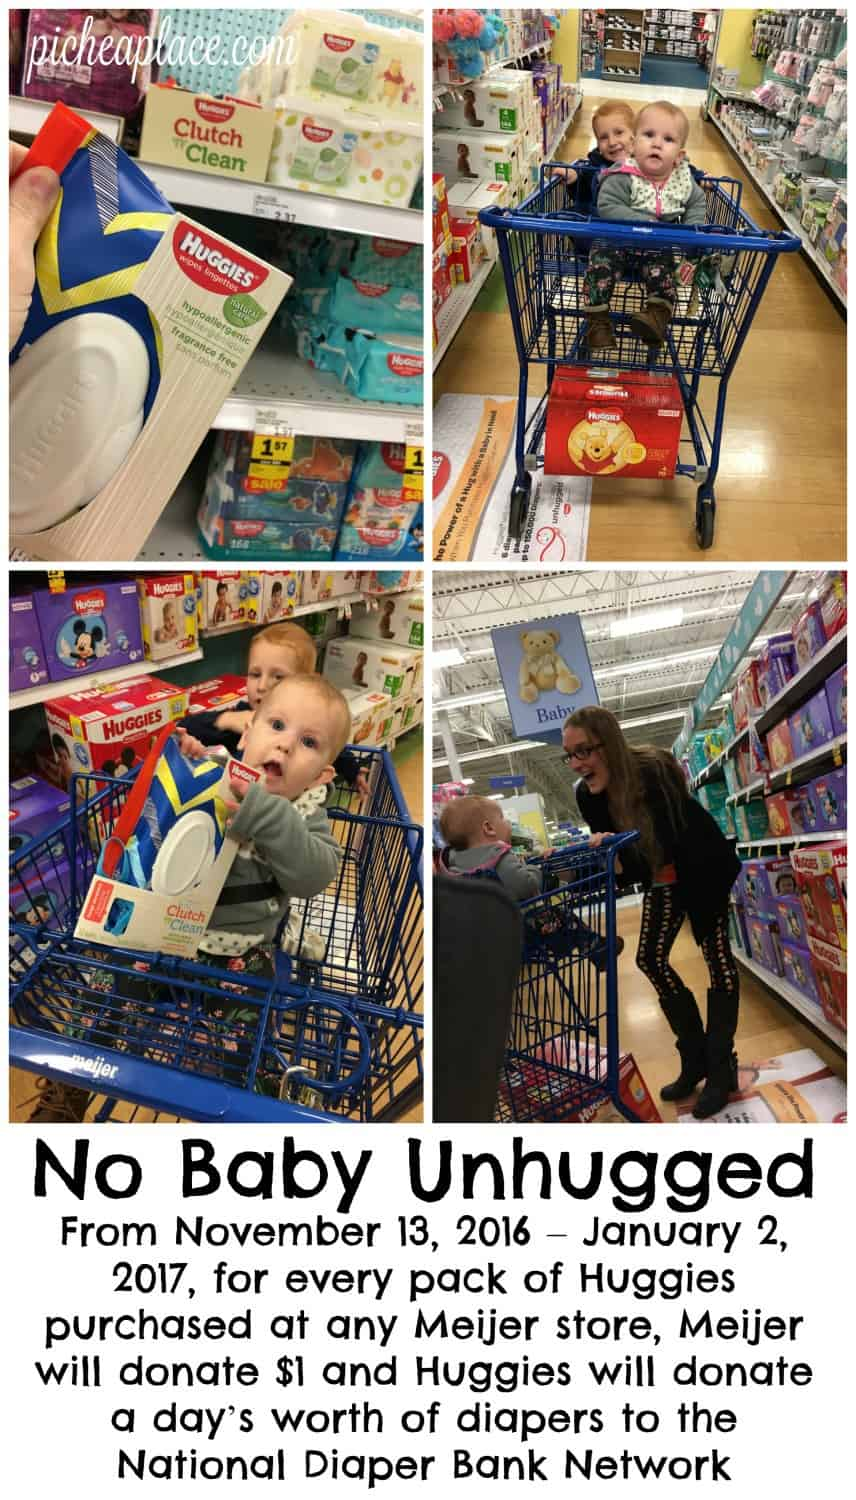 From November 13, 2016 – January 2, 2017, for every pack of Huggies purchased at any Meijer store, Meijer will donate $1 and Huggies will donate a day's worth of diapers to the National Diaper Bank Network.